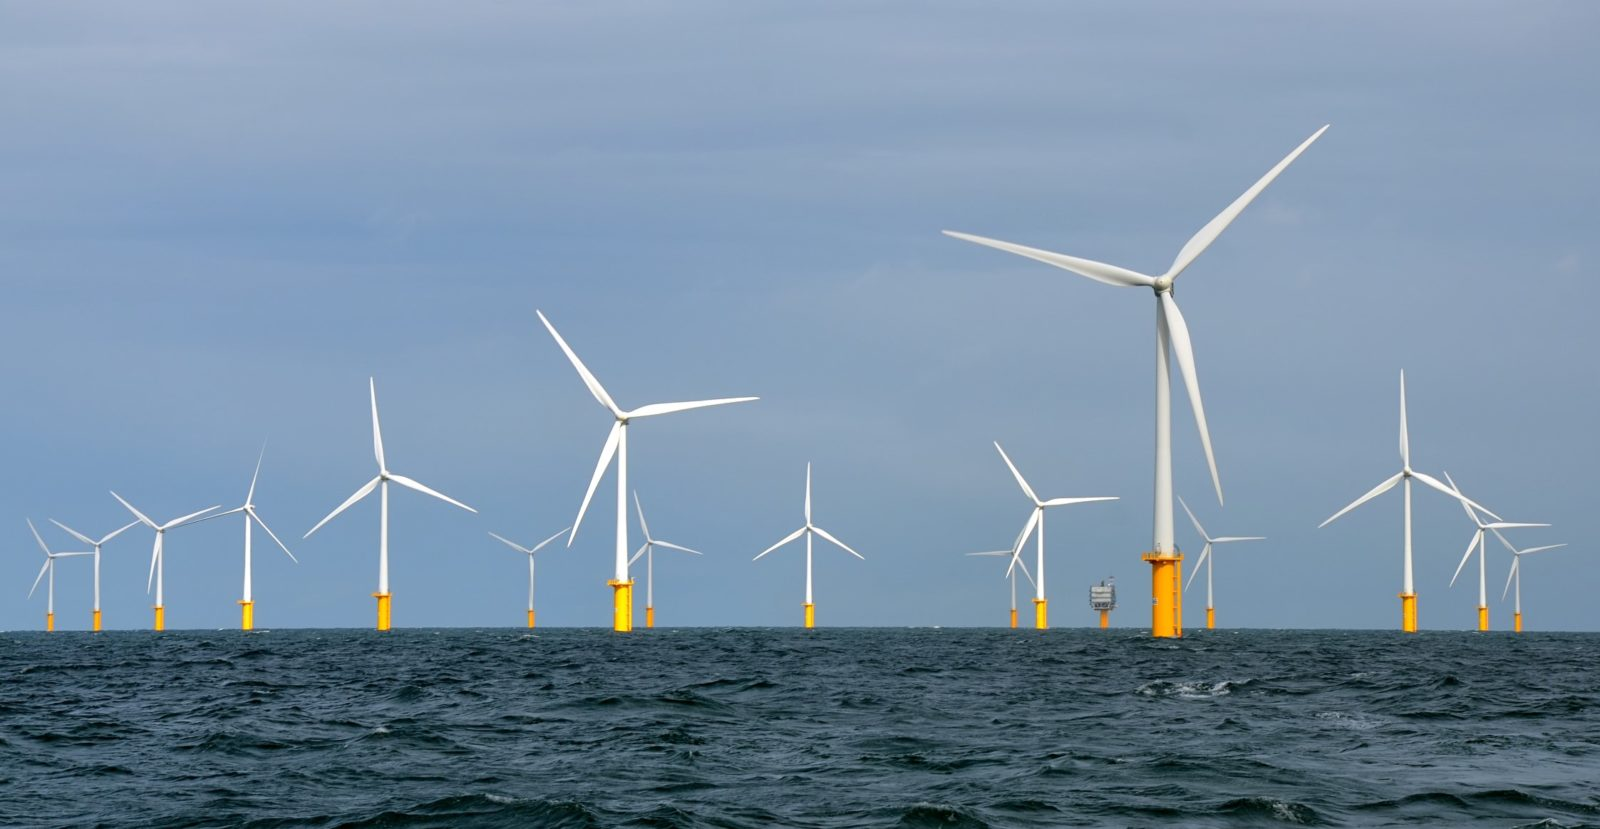 cierco-wind-technology-offshore-wind-2019-c